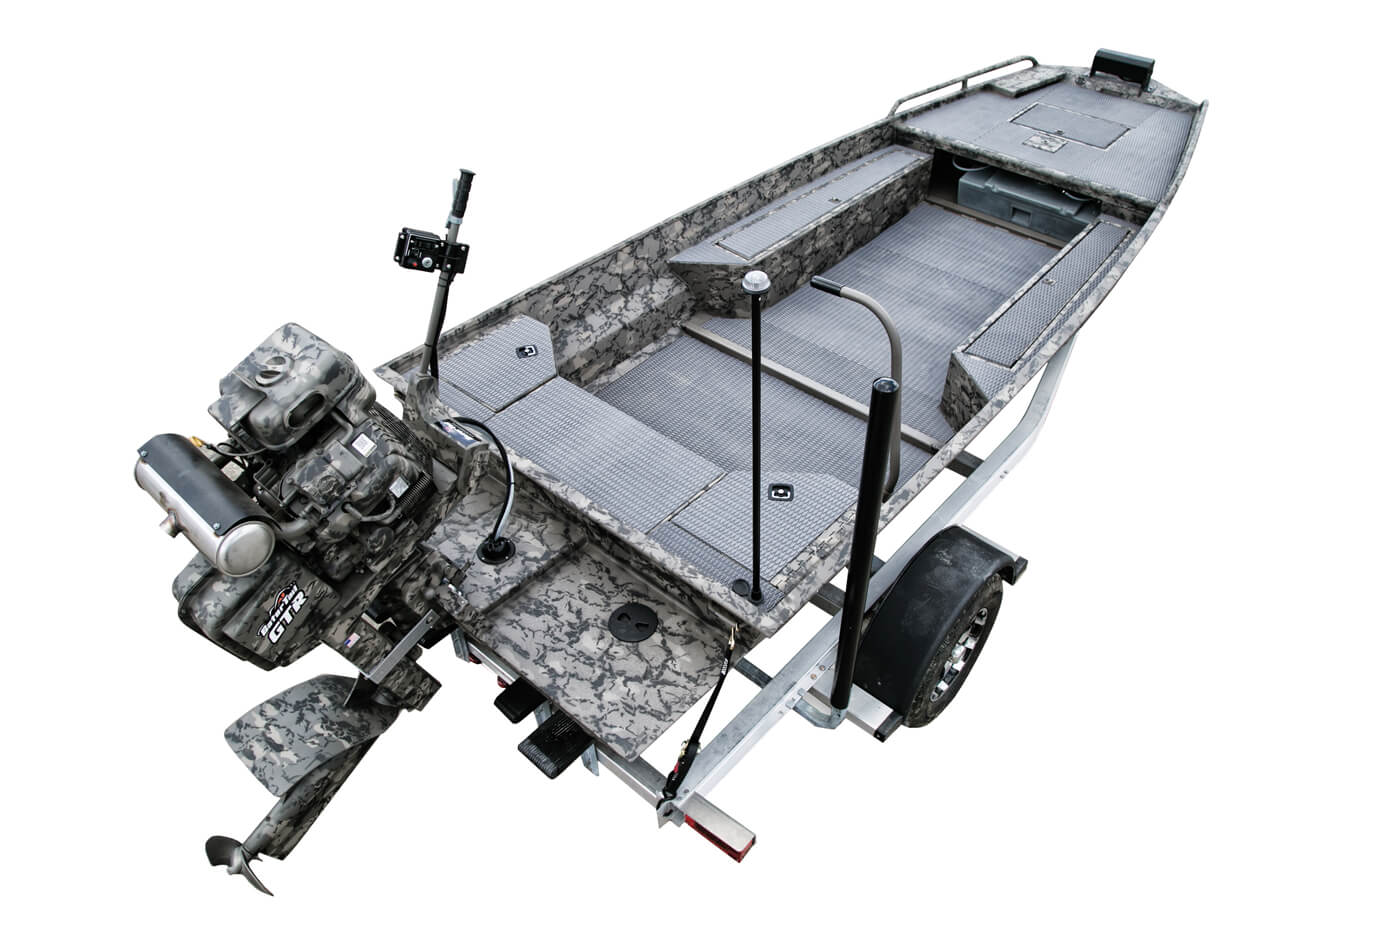 Gator-Tail Extreme Series boat in trailer rig